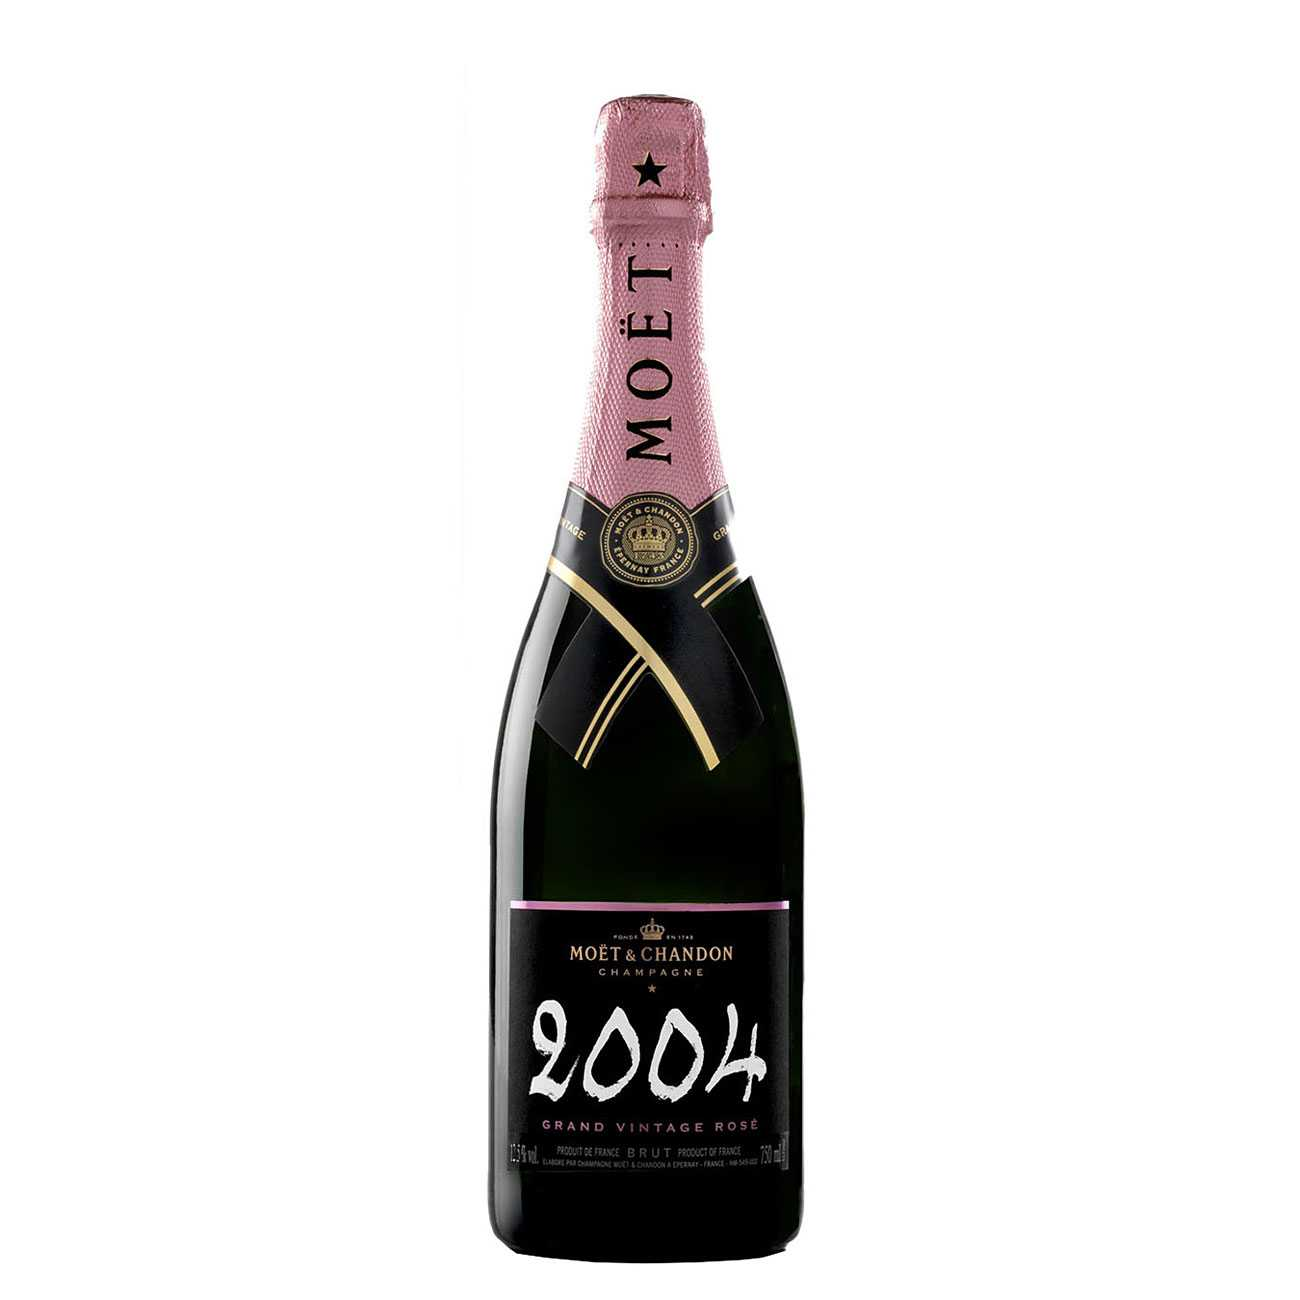 Sampanie, VINTAGE BRUT ROSÉ 750 ML, Moet & Chandon